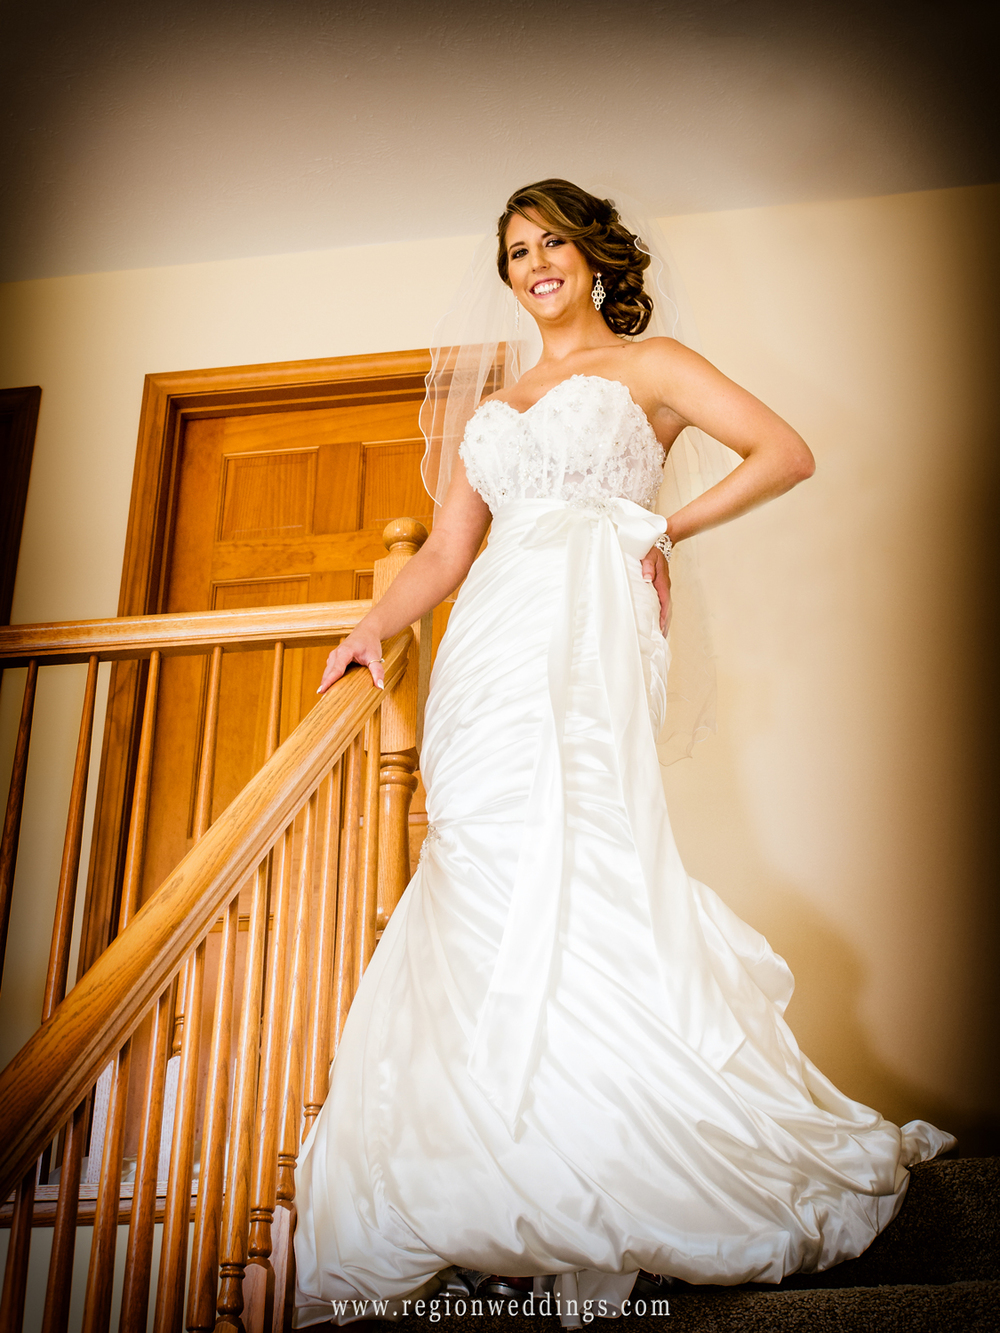 The bride shows off her dress on the steps of her home in Cedar Lake on her wedding day.